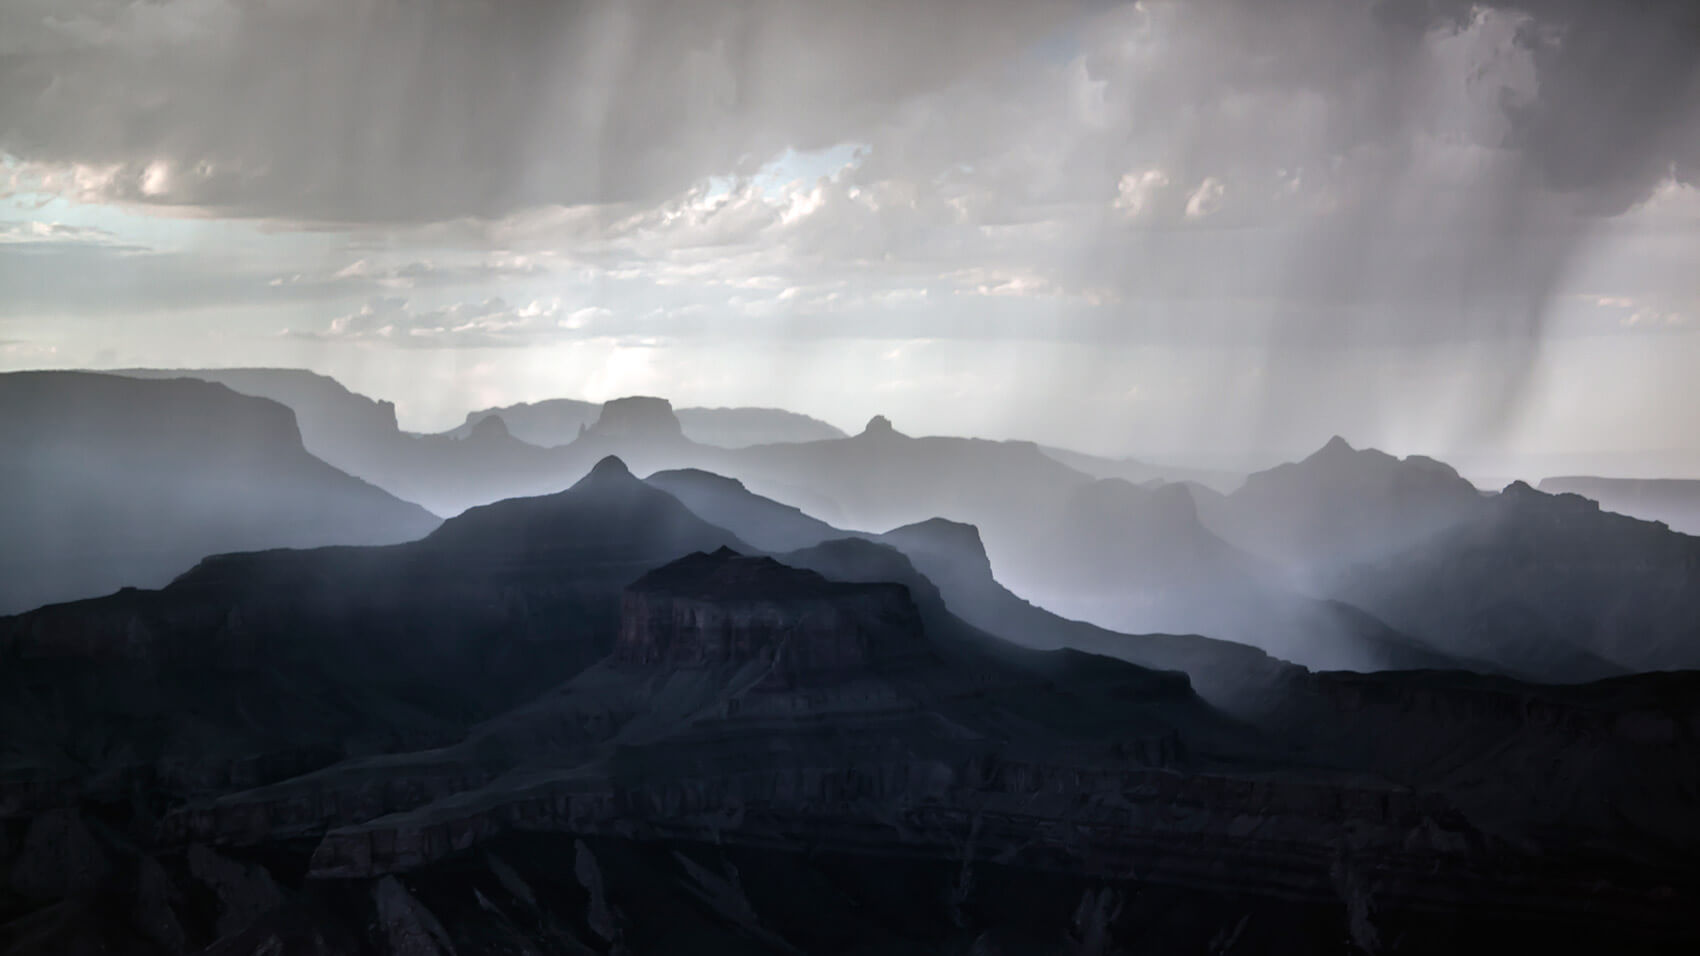 Grand Canyon at sunset with rain